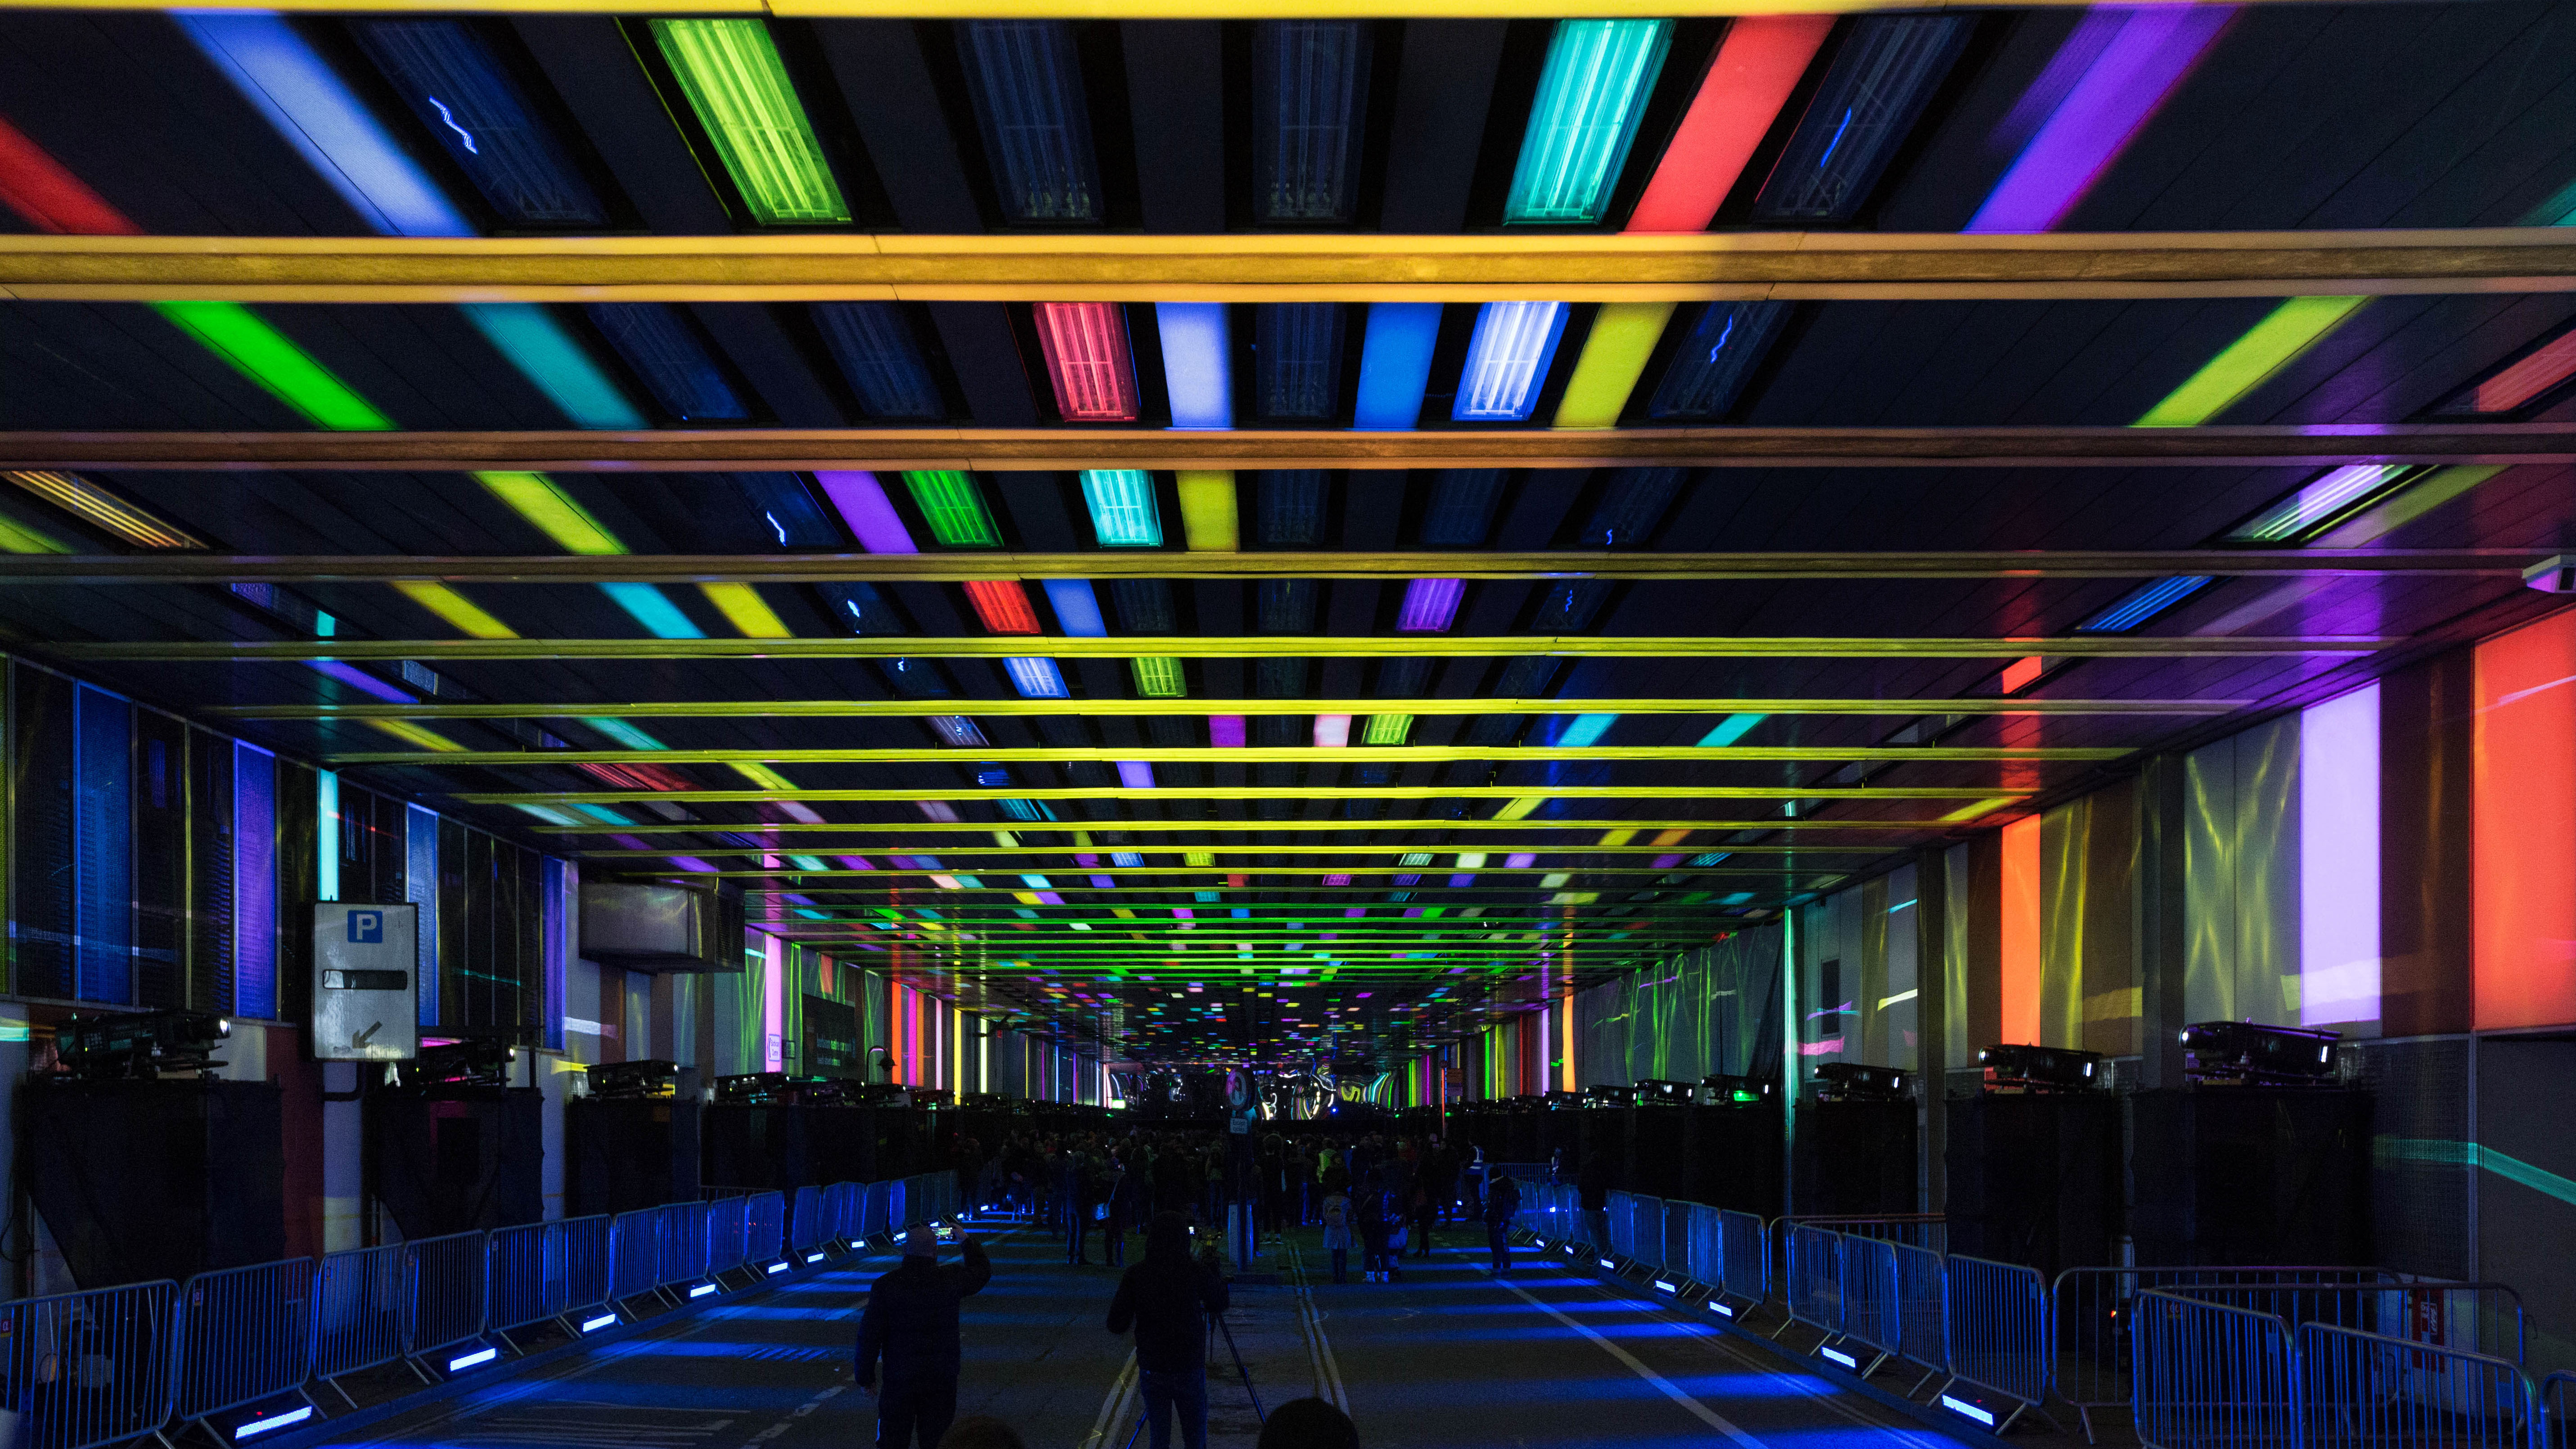 Tunnel Visions, one of Culture Mile's most creative projects